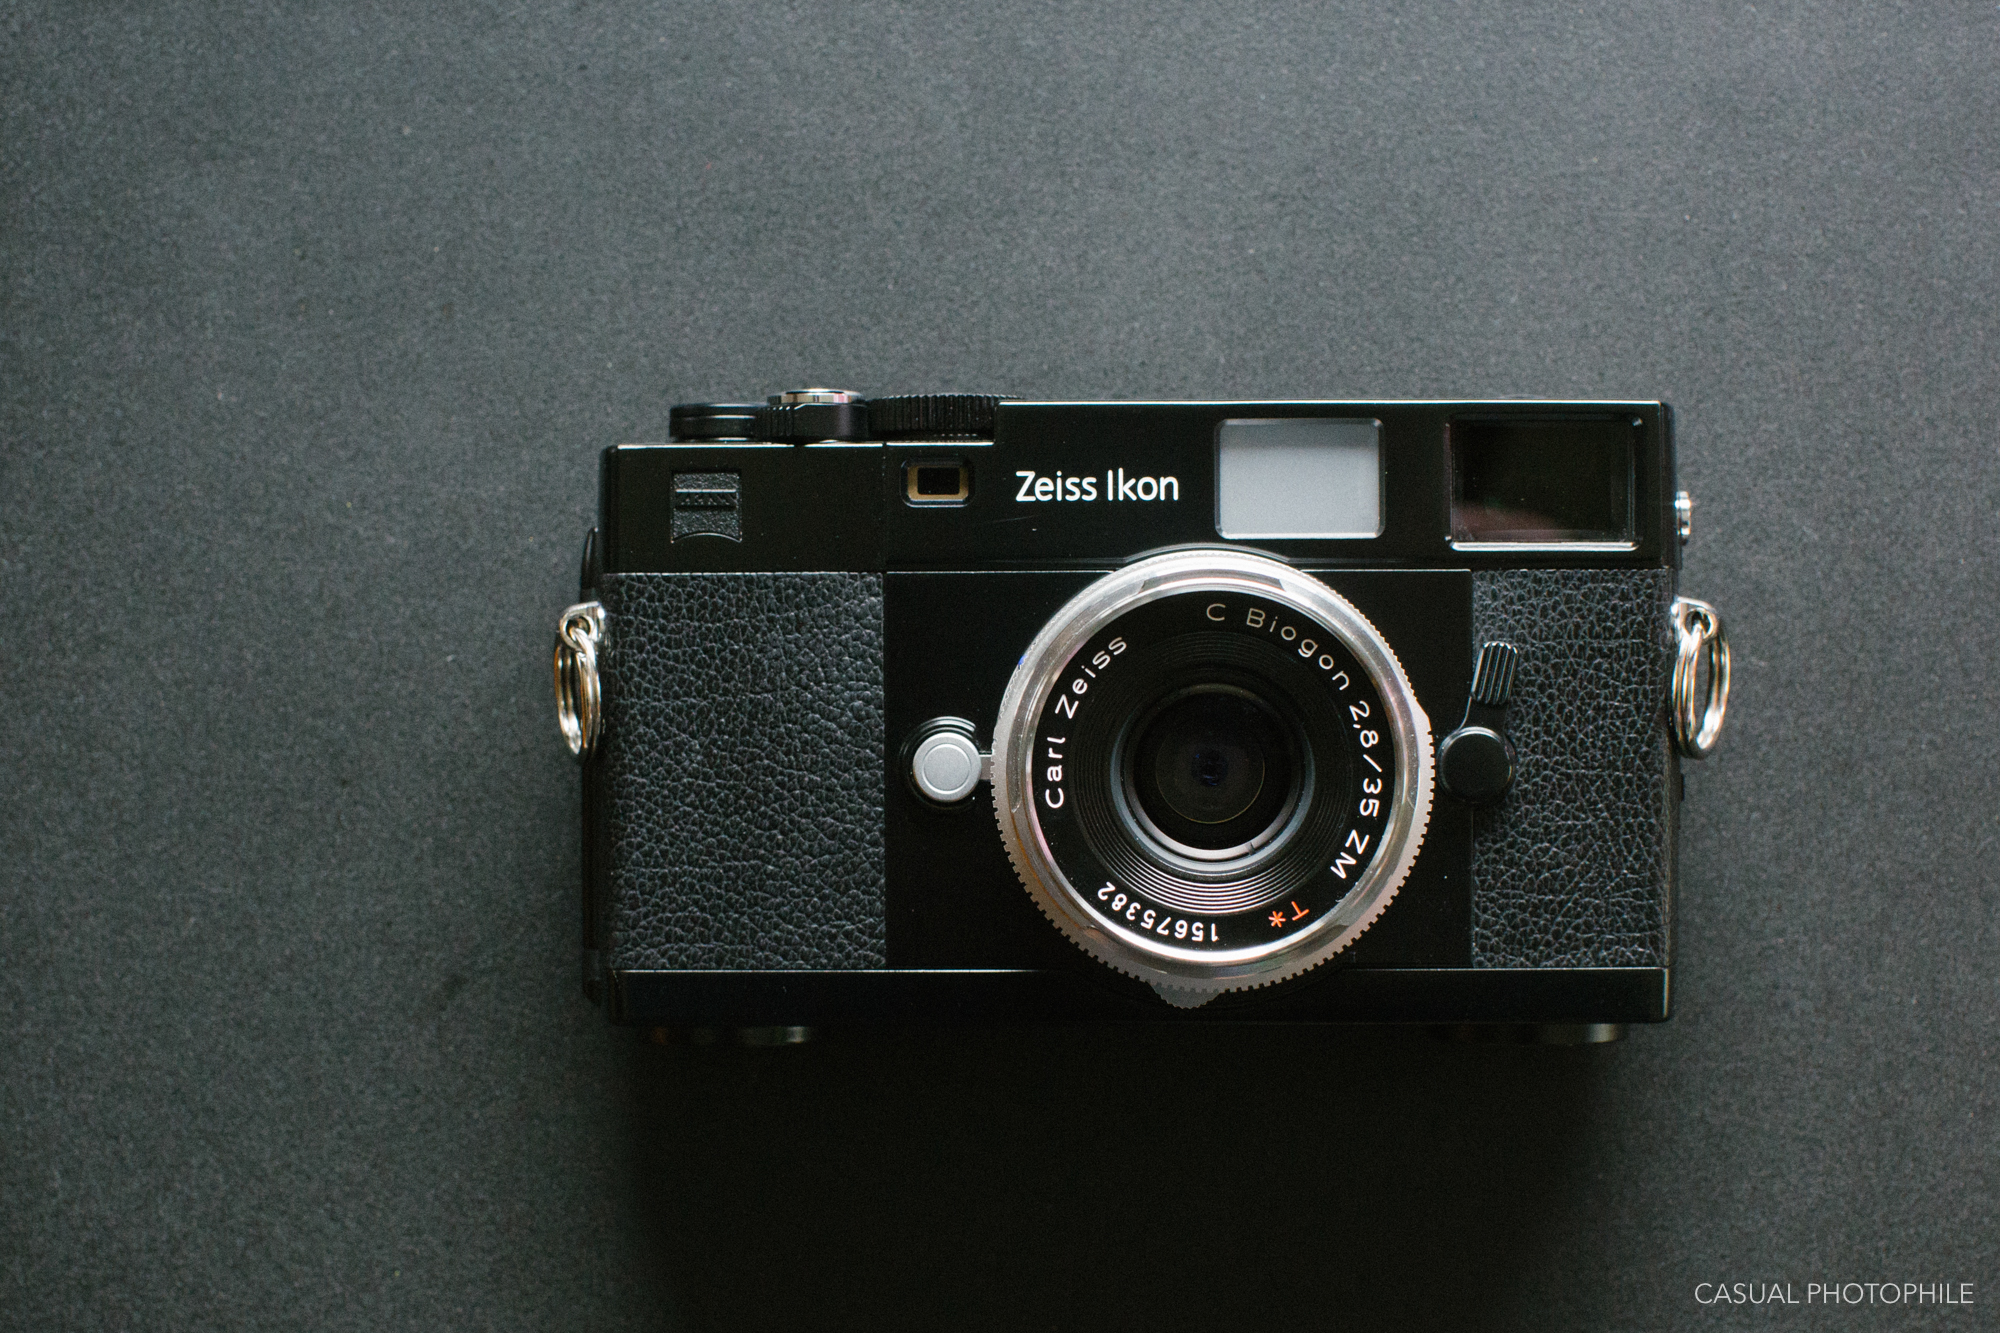 Zeiss Ikon ZM 35mm Rangefinder Review - Everything a